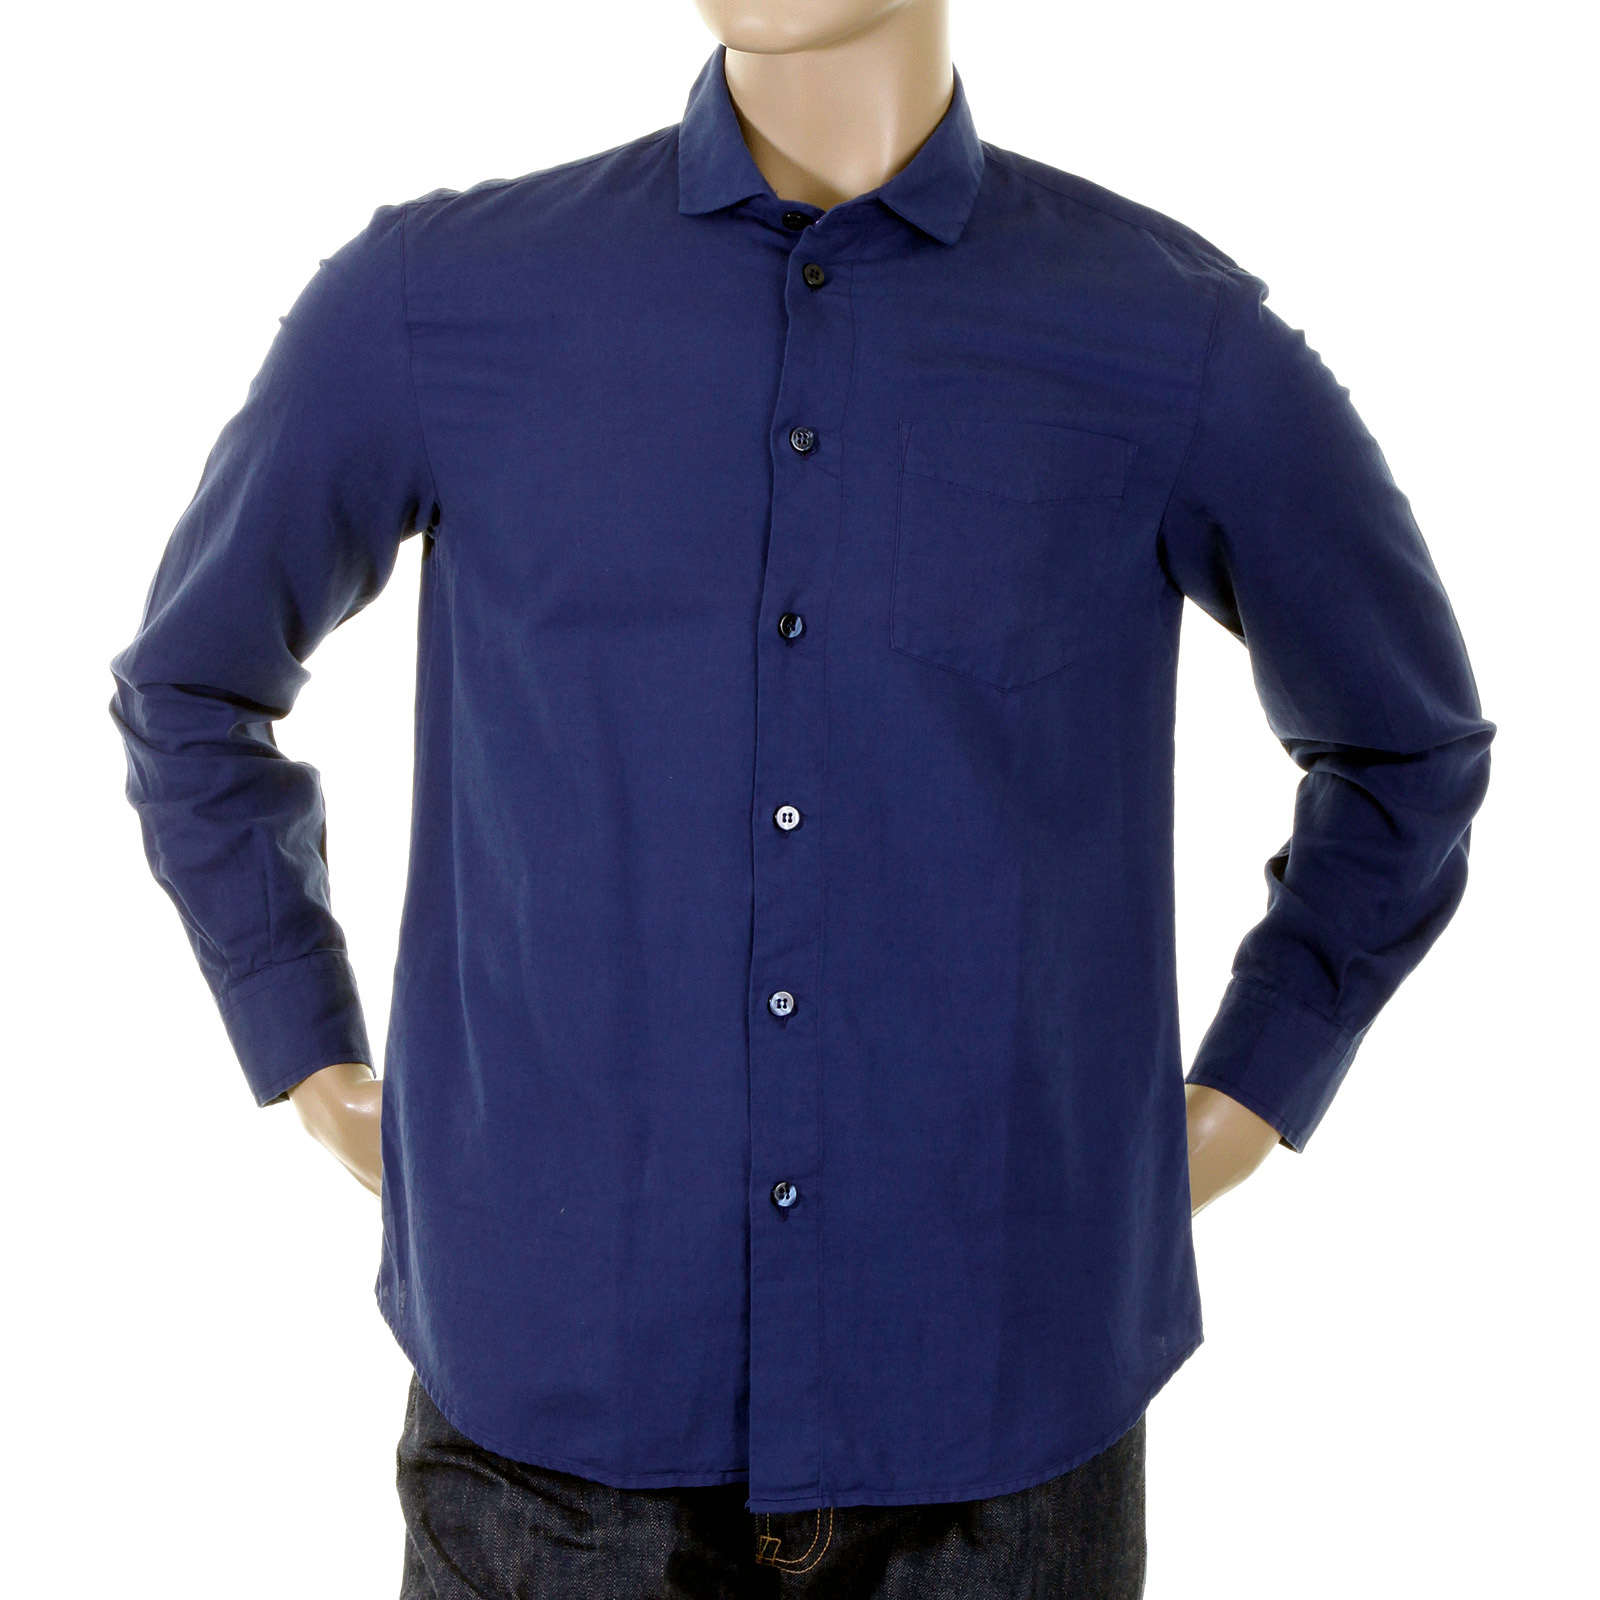 Armani jeans mens shirt long sleeve dark blue k6c7 0pg for Mens jeans and dress shirt